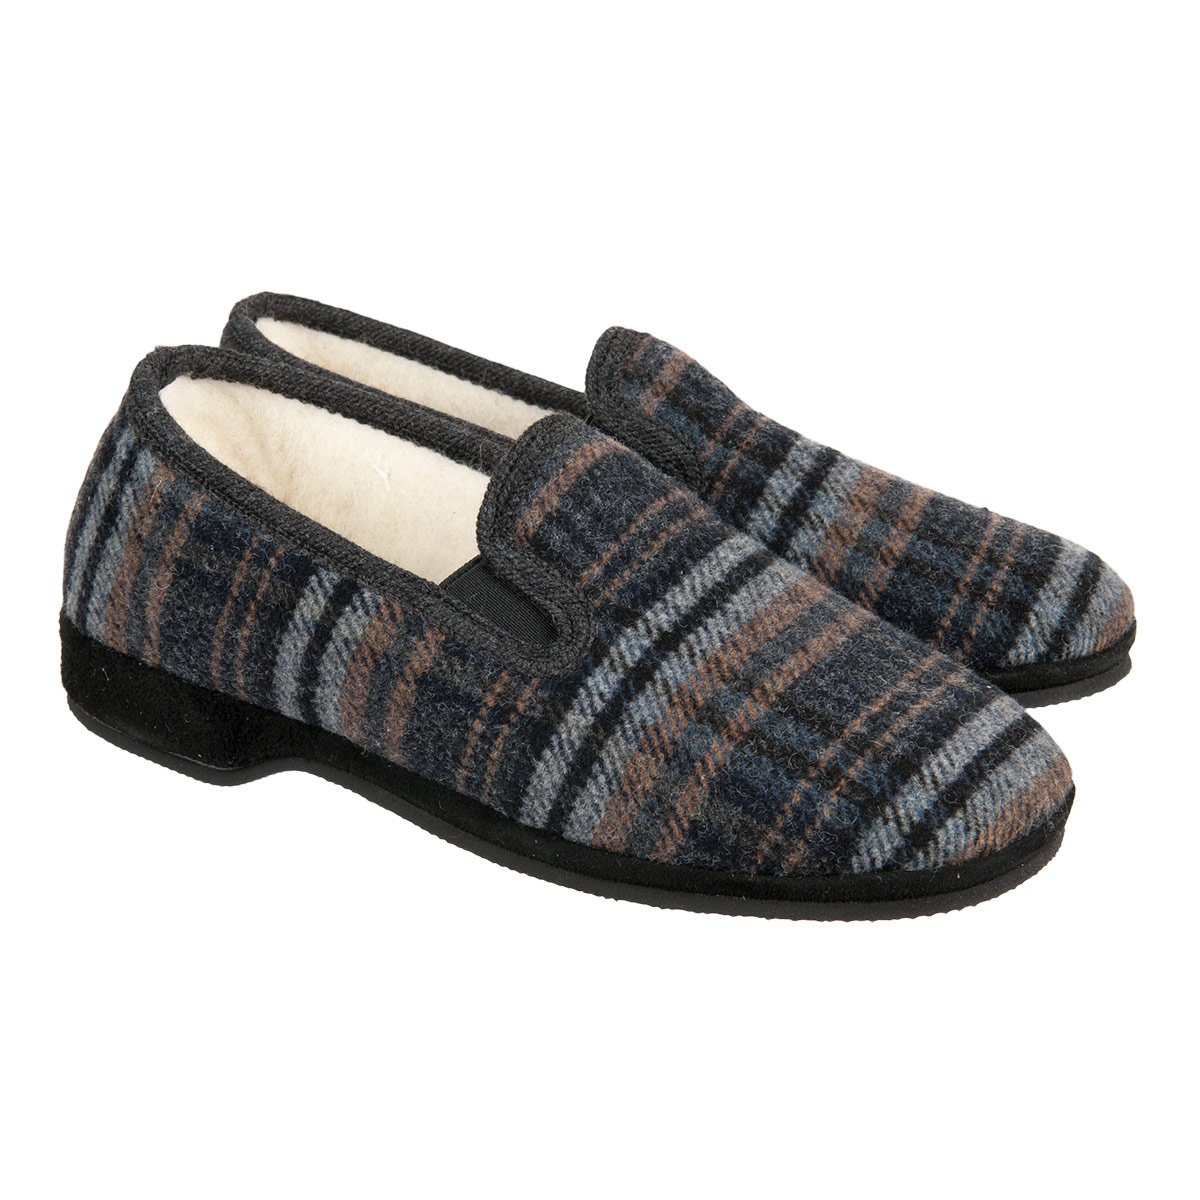 Slippers for women with anti-slip sole